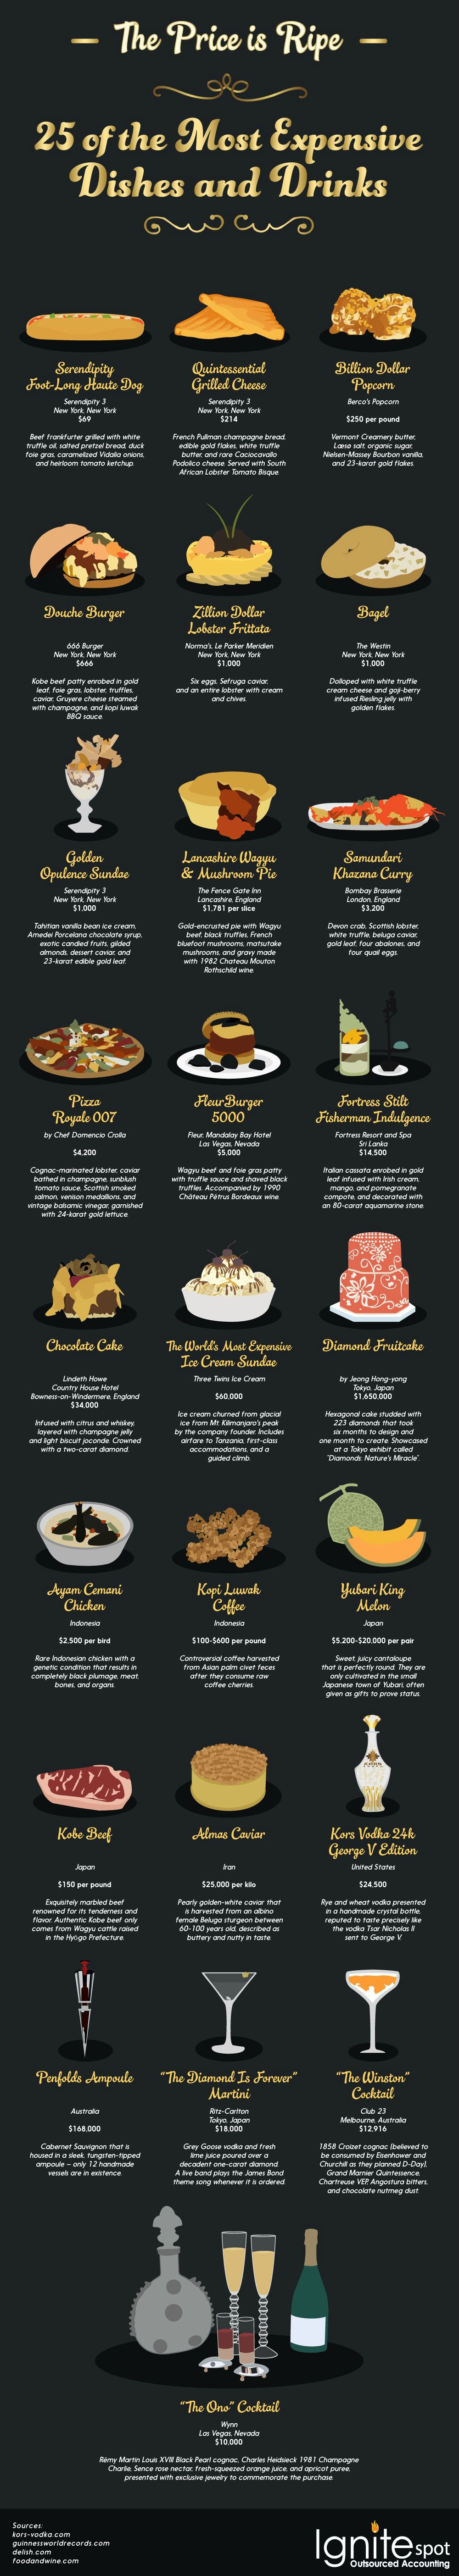 The Price is Ripe: 25 of the Most Expensive Dishes and Drinks from Around the World